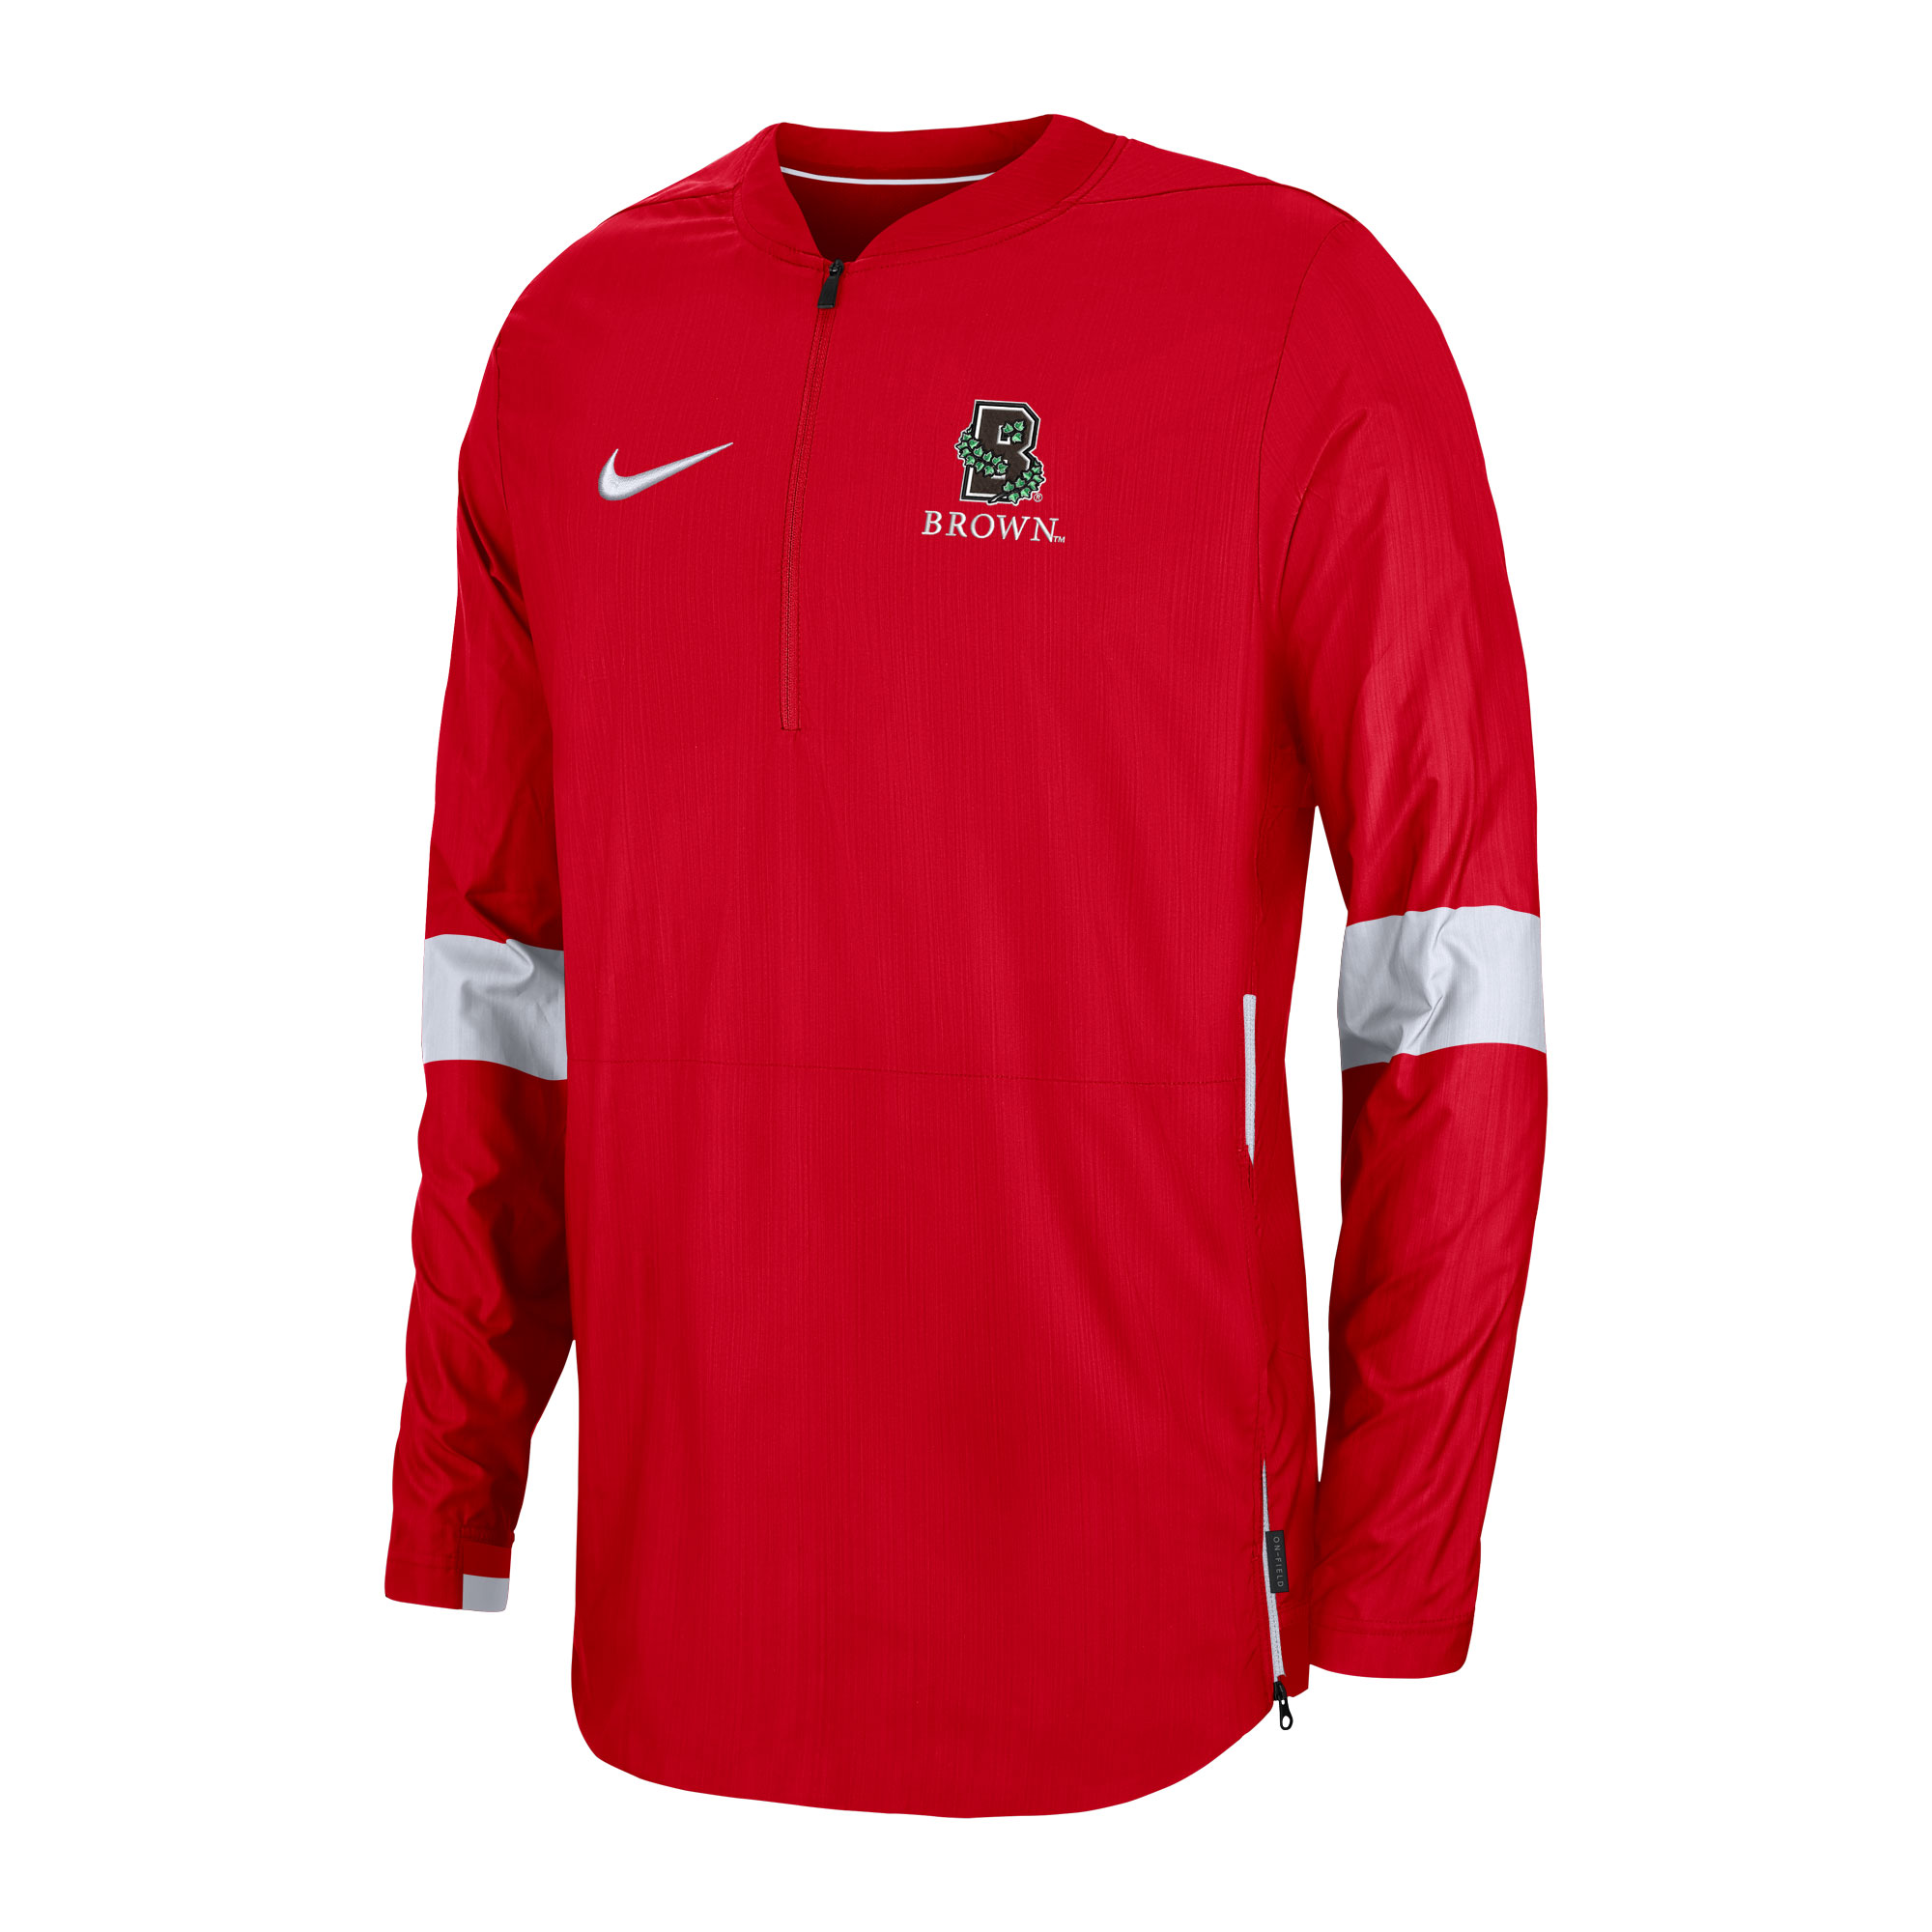 Cover Image For Nike Lightweight Coach Jacket - Red and White - 3x